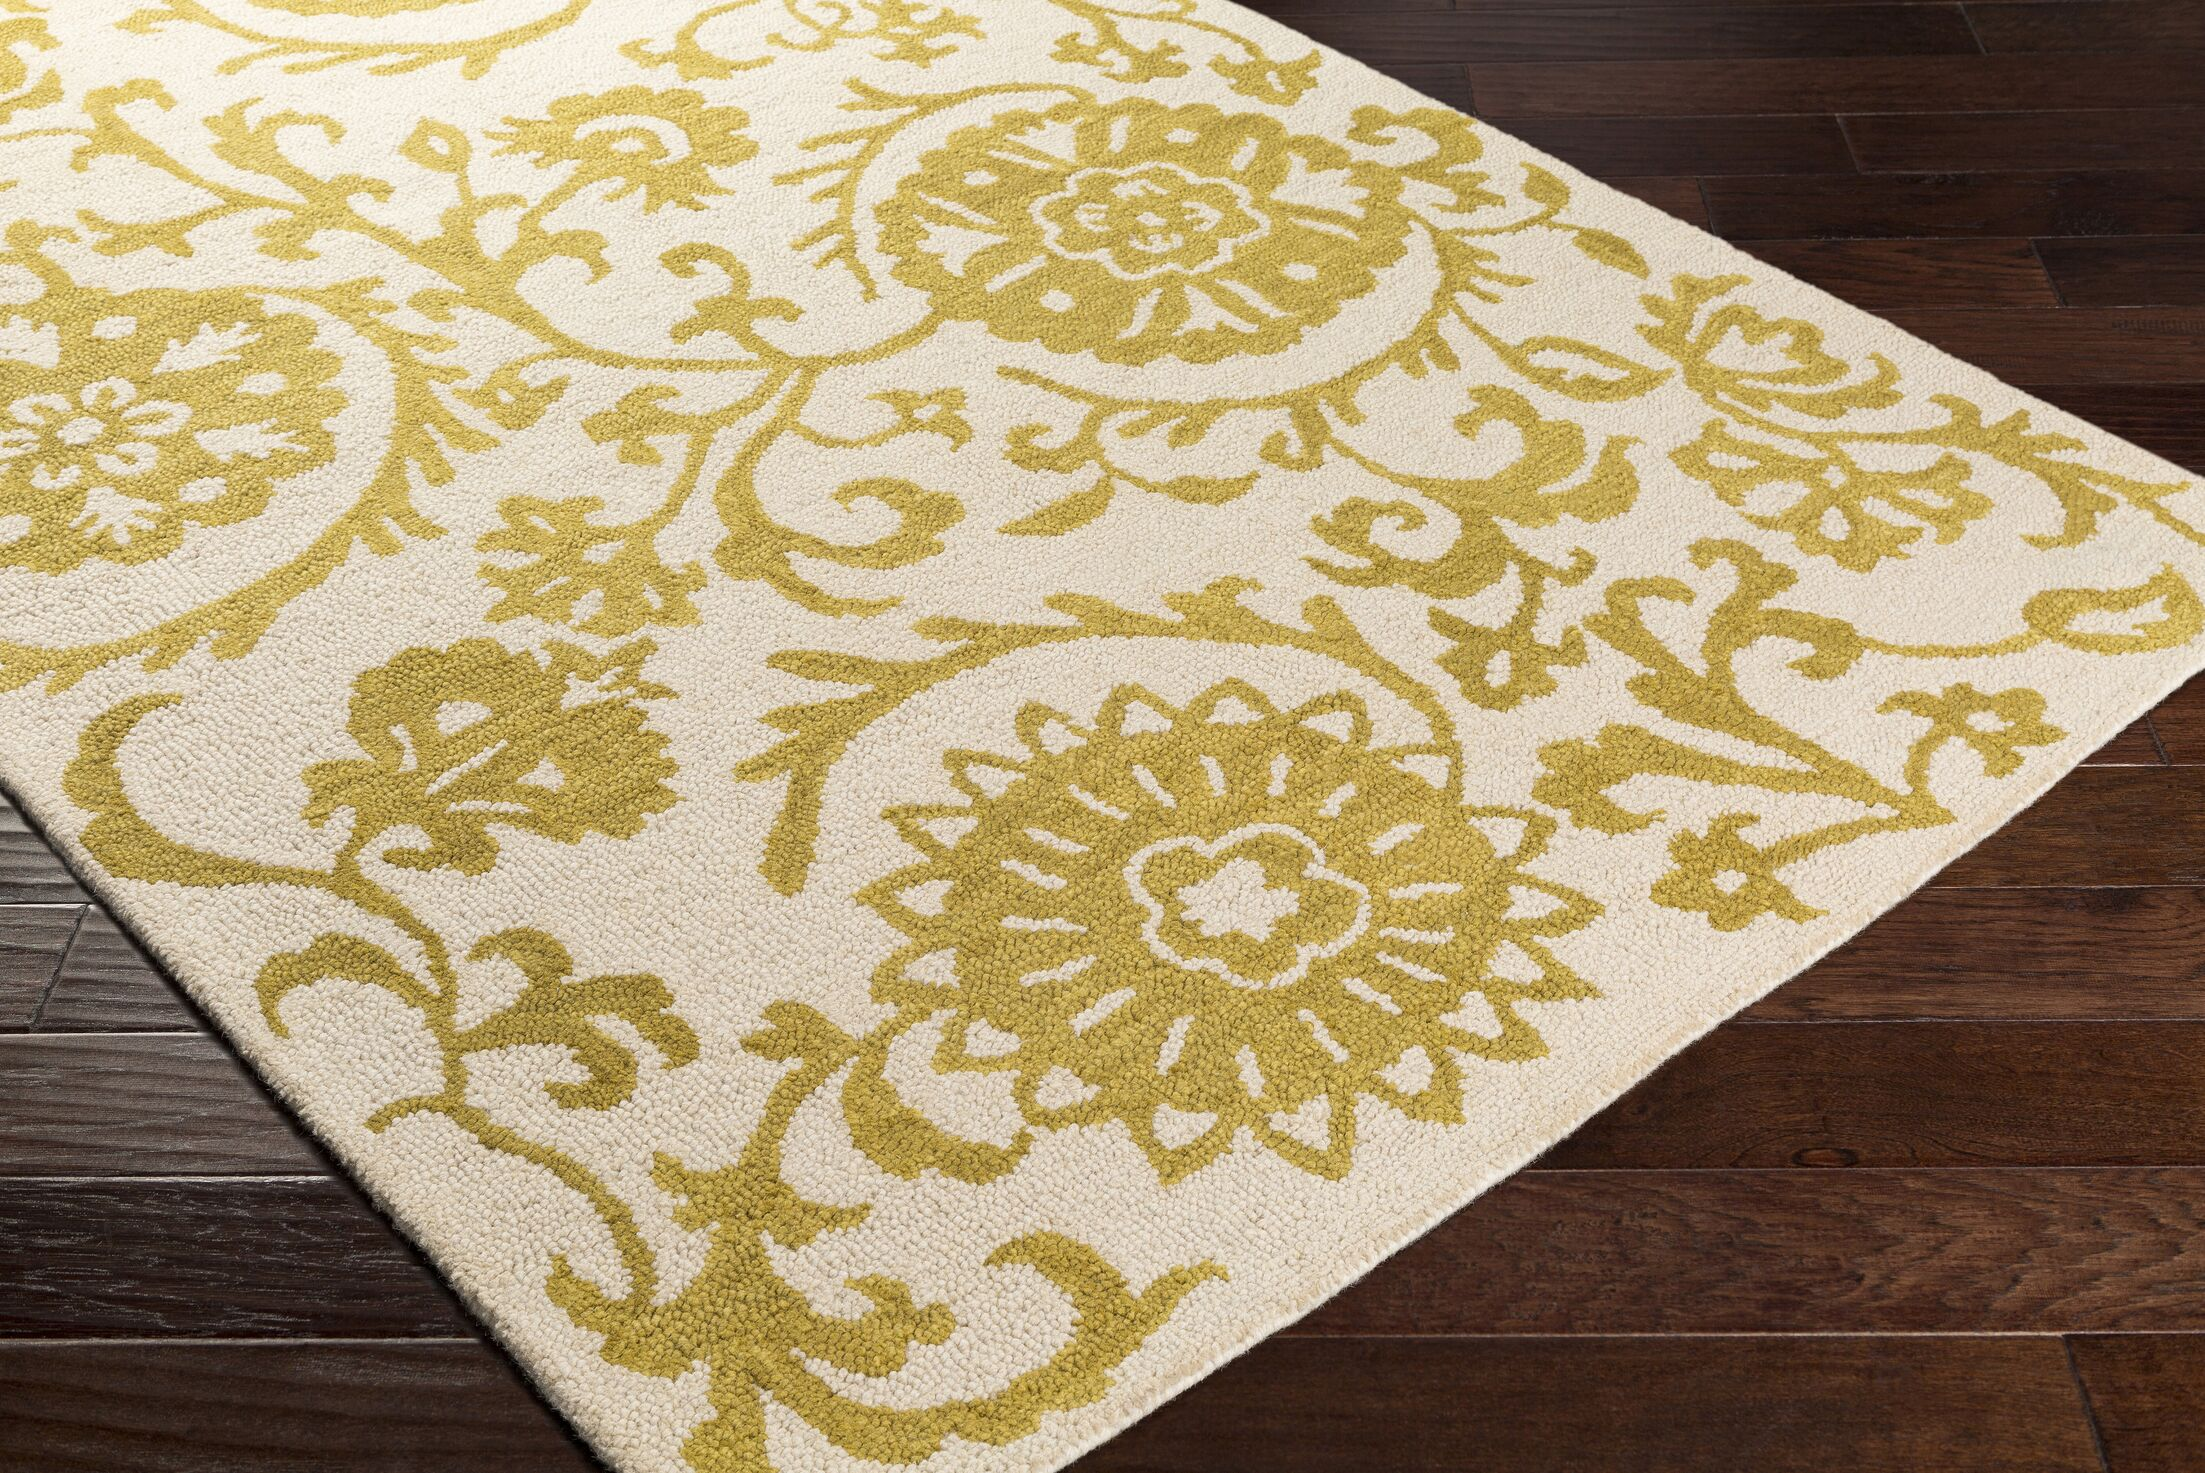 Aylor Hand-Tufted Yellow Area Rug Rug Size: Rectangle 9' x 13'